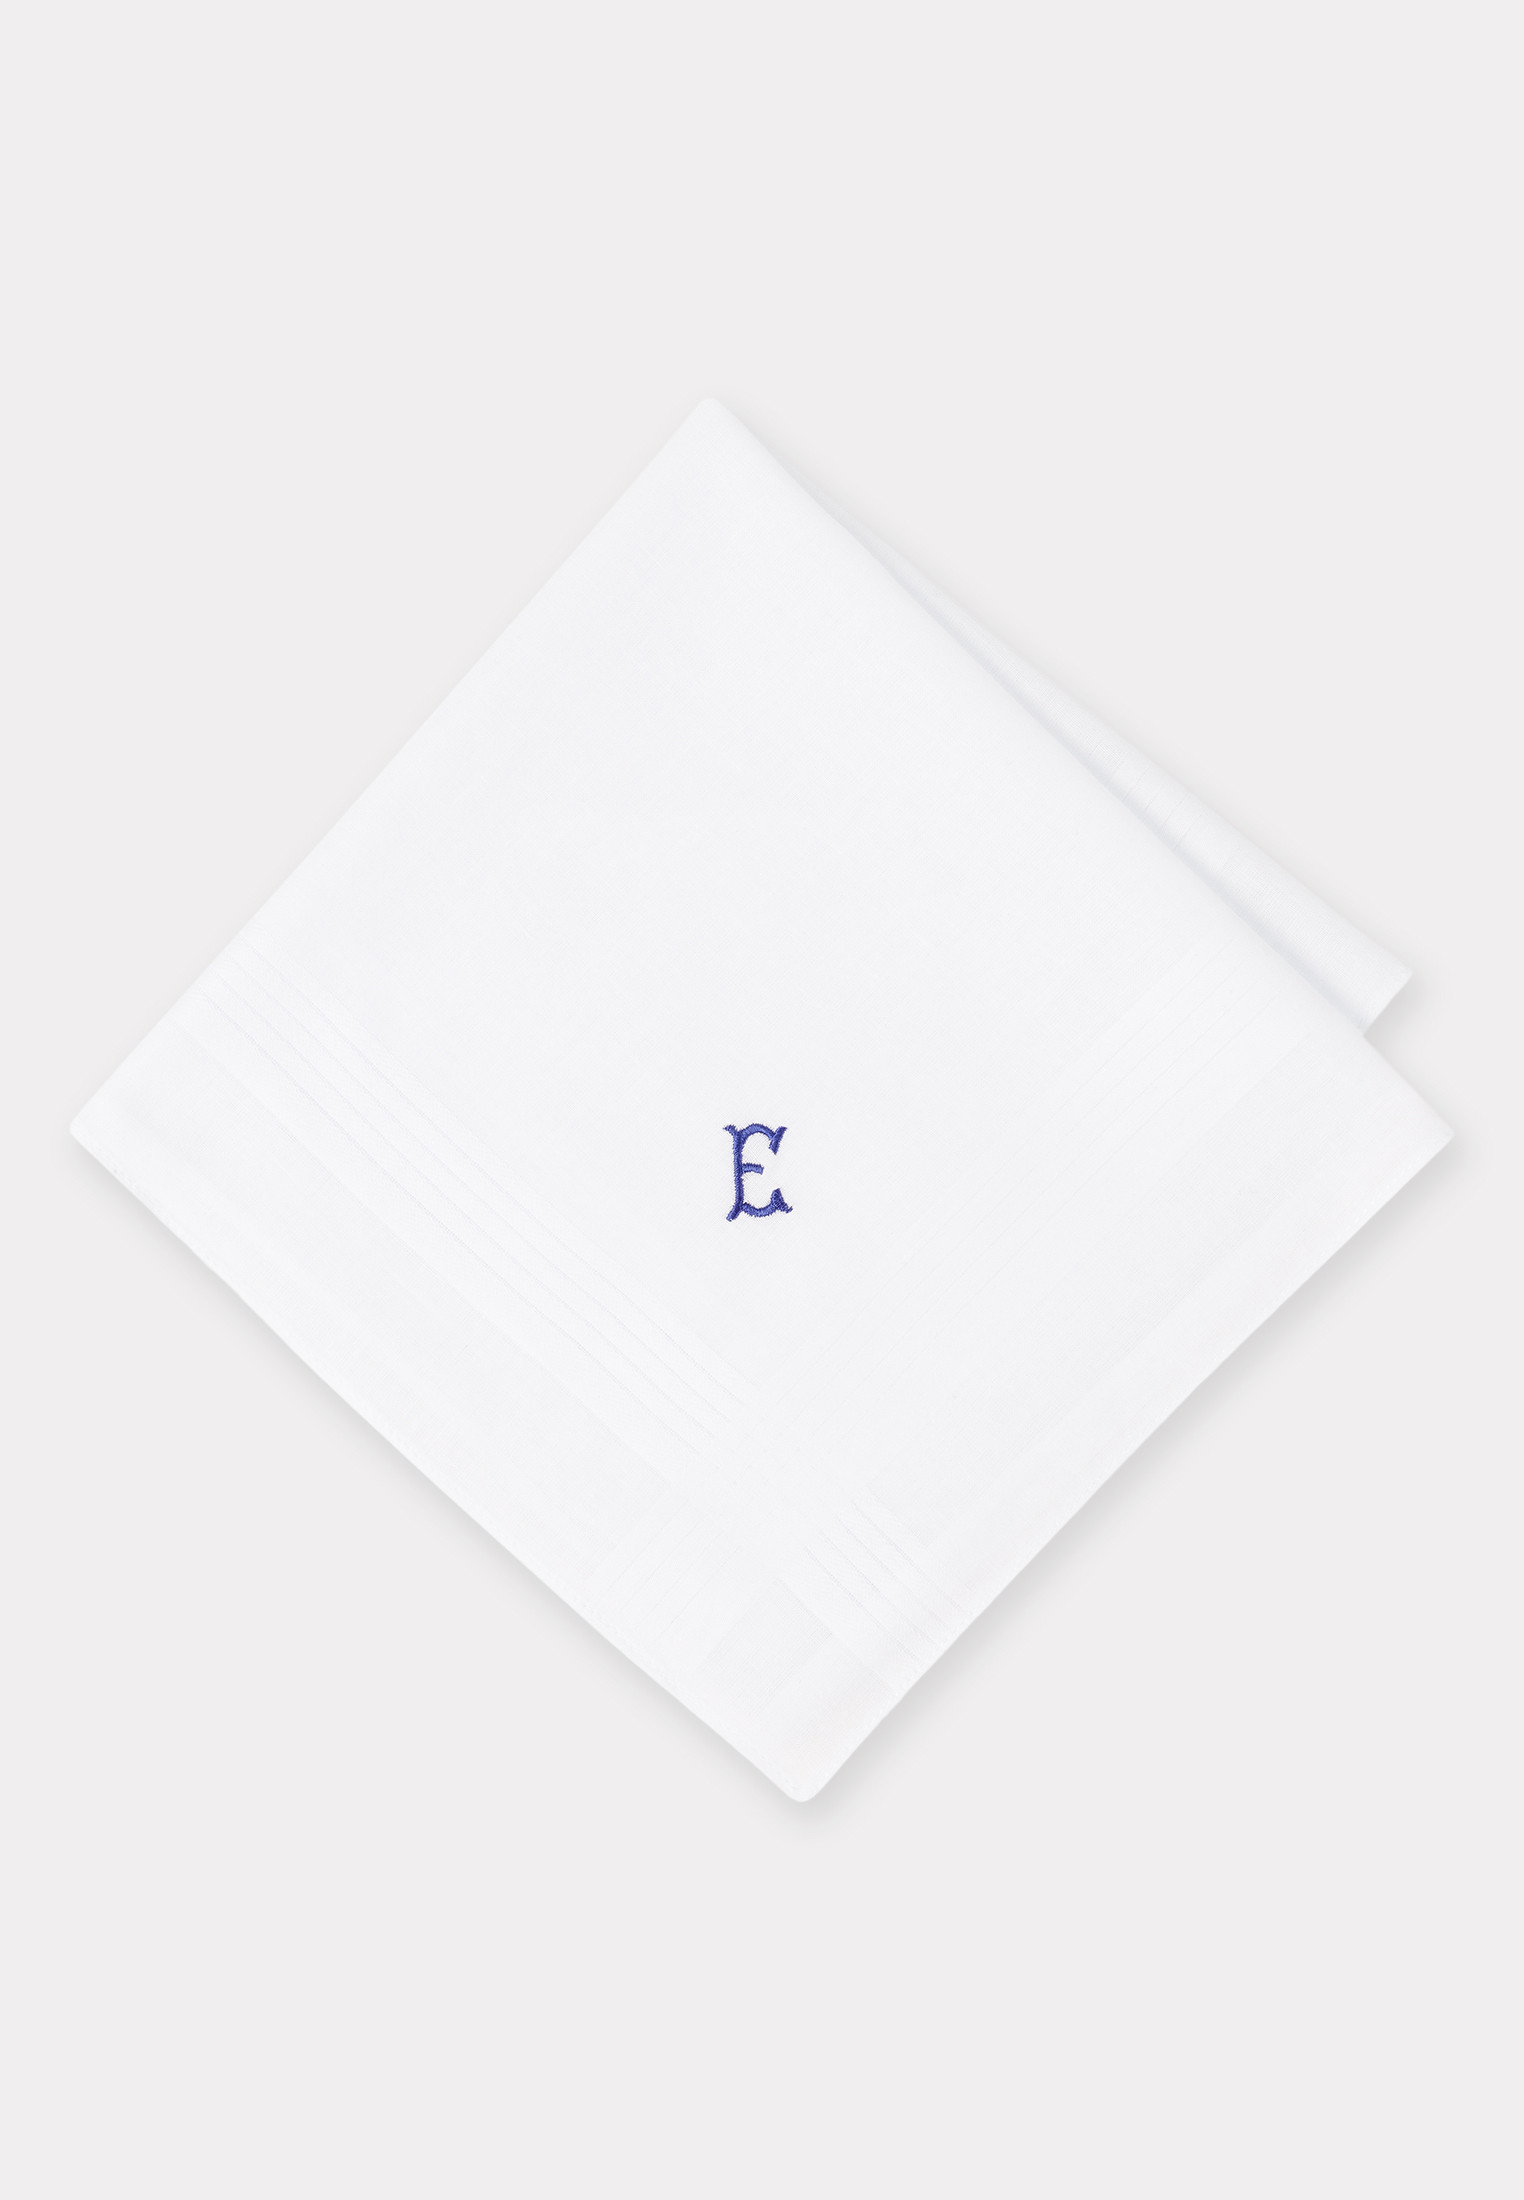 Handkerchief Monogrammed with Initial 'E' - Presentation Pack of 3